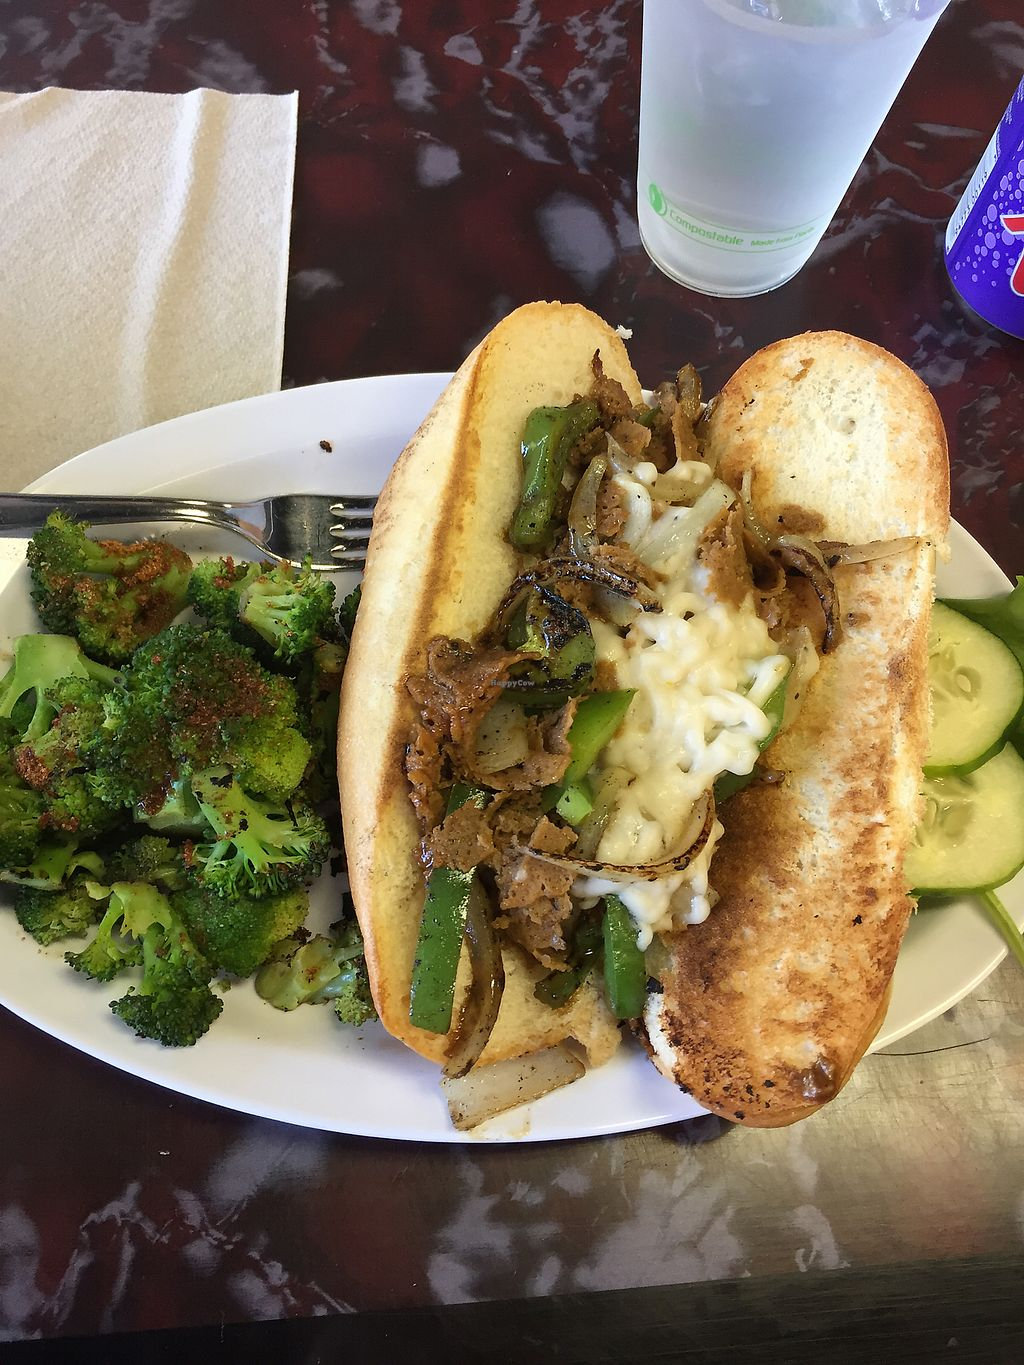 """Photo of Sanctuary Vegan Cafe  by <a href=""""/members/profile/sopranonerd"""">sopranonerd</a> <br/>Philly cheesesteak  <br/> September 22, 2017  - <a href='/contact/abuse/image/84135/307015'>Report</a>"""